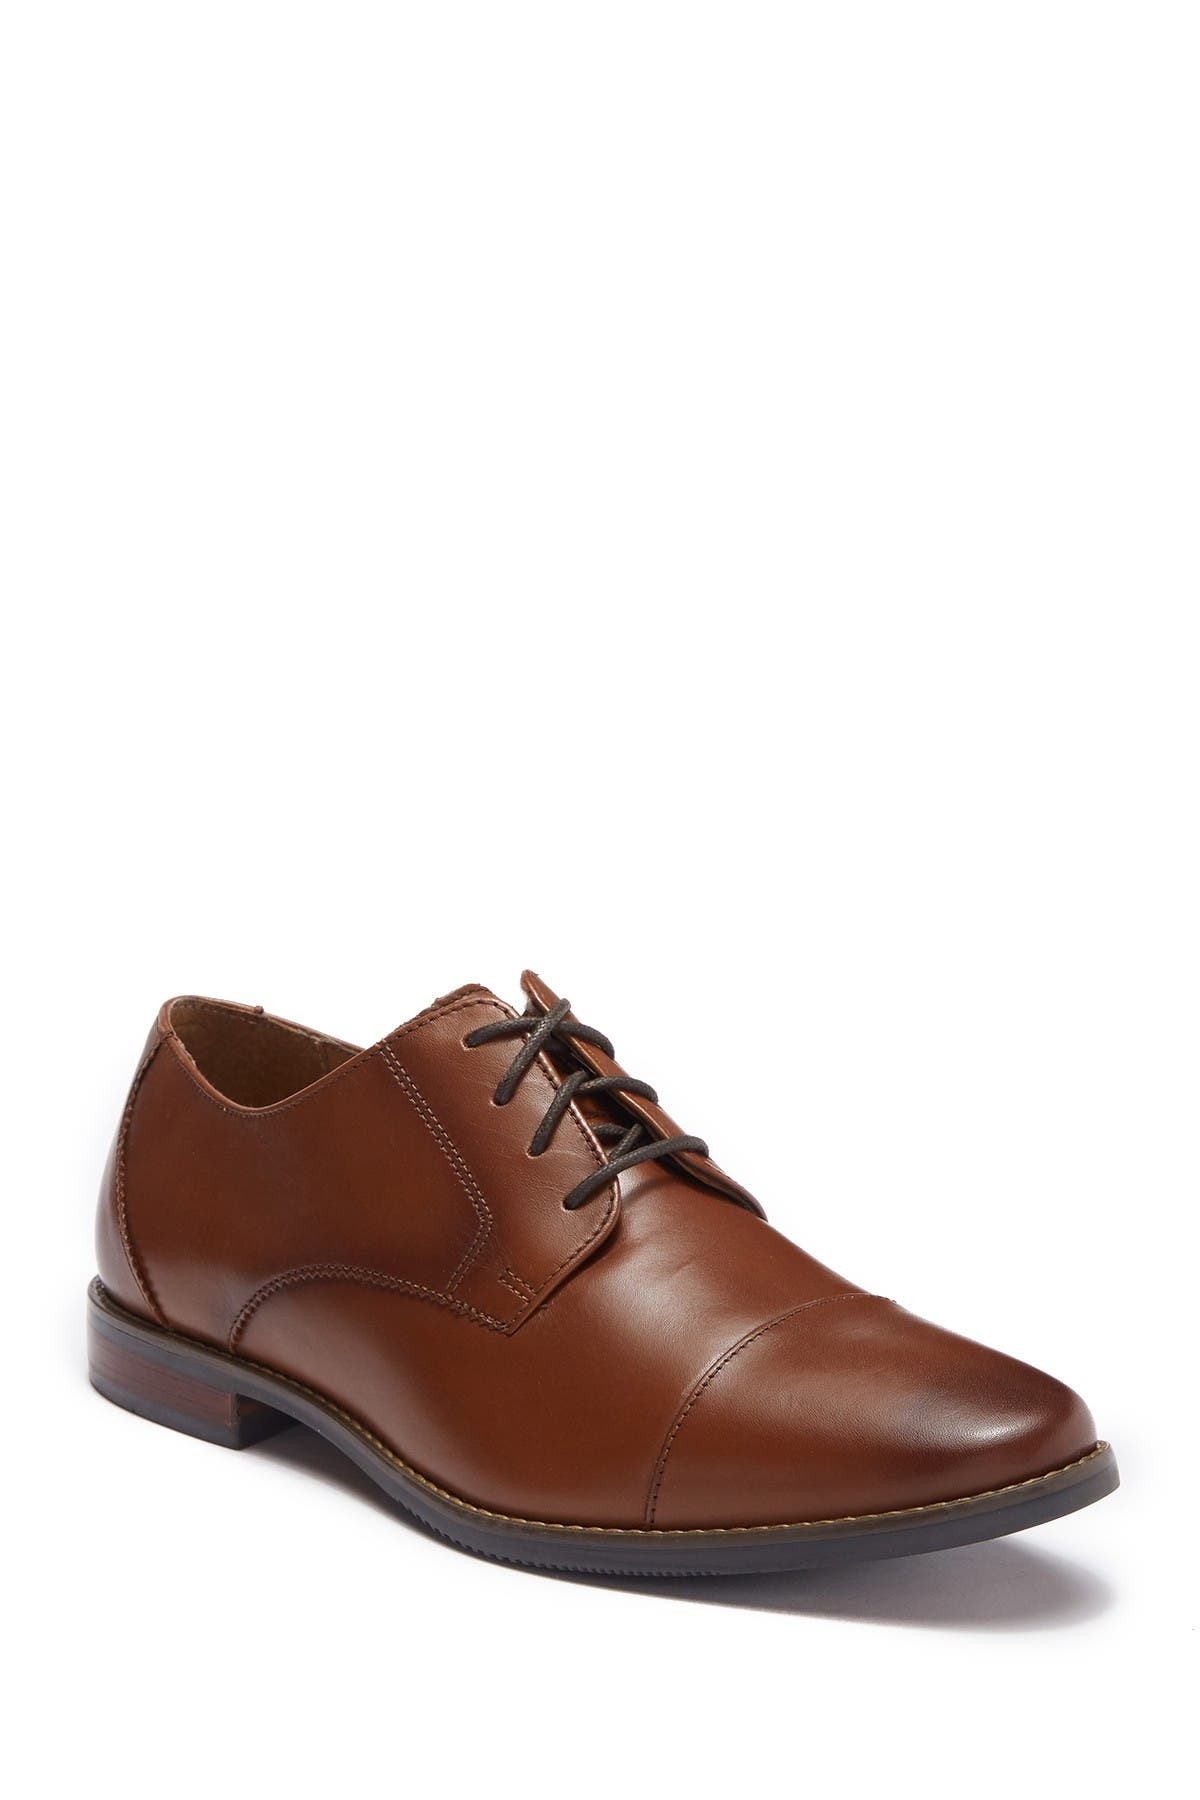 Image of Florsheim Matera Cap Toe Oxford